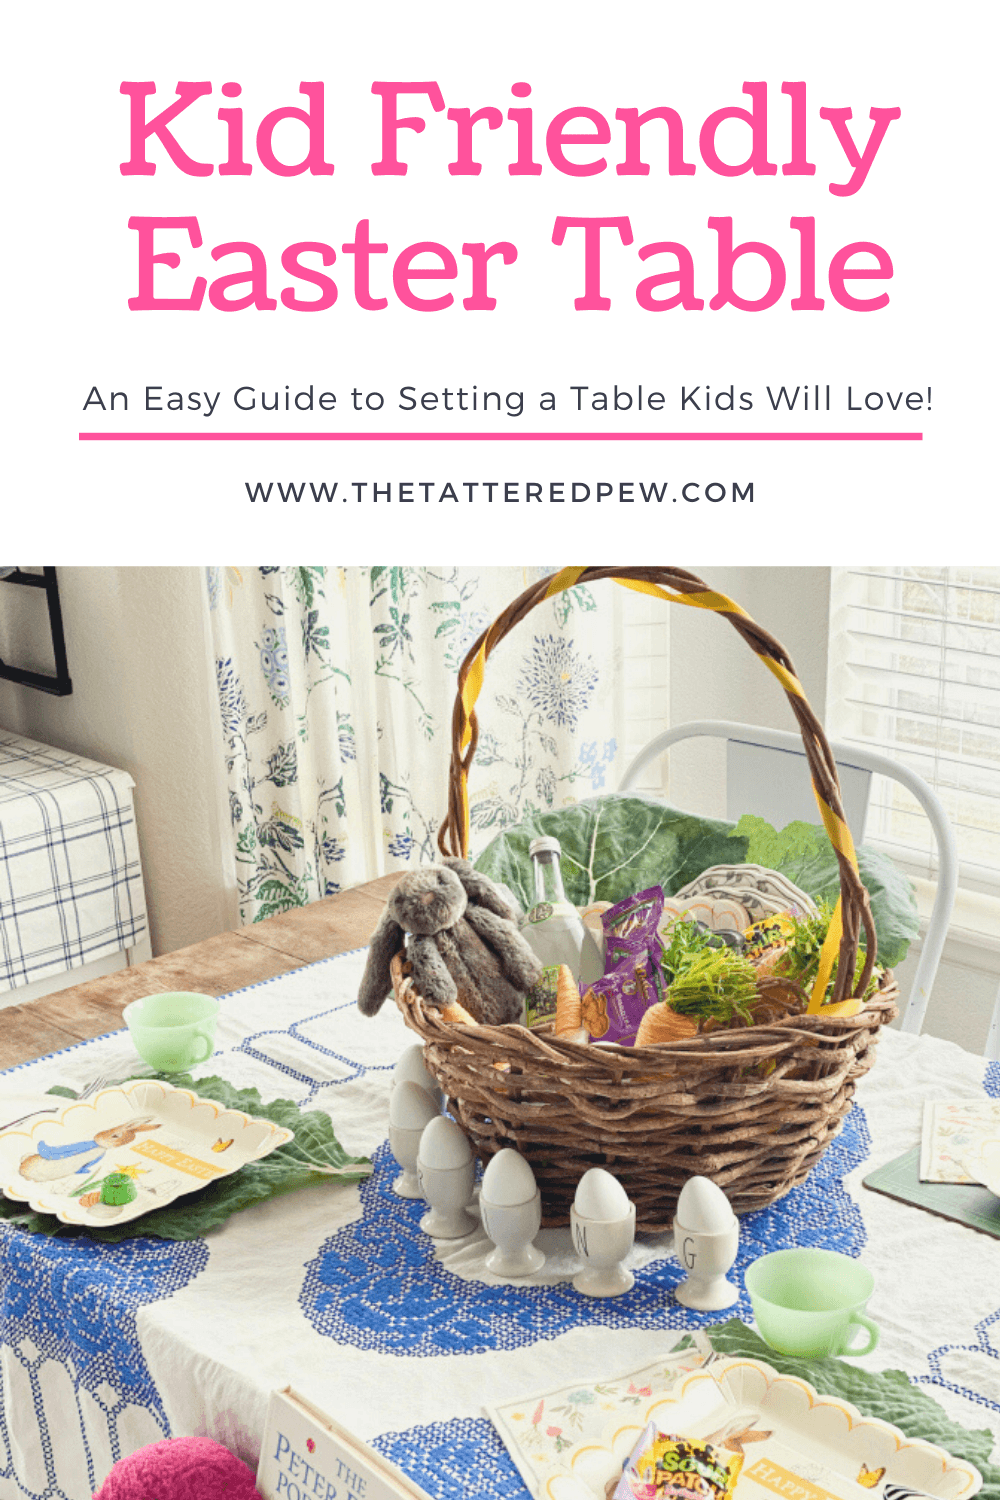 Stores With Farmhouse Decor Farmhouse Decor Ideas For Fireplace Modern Farmhouse Decor Joanna Gaines Is In 2020 Kid Friendly Easter Easter Table Easter Basket Tags